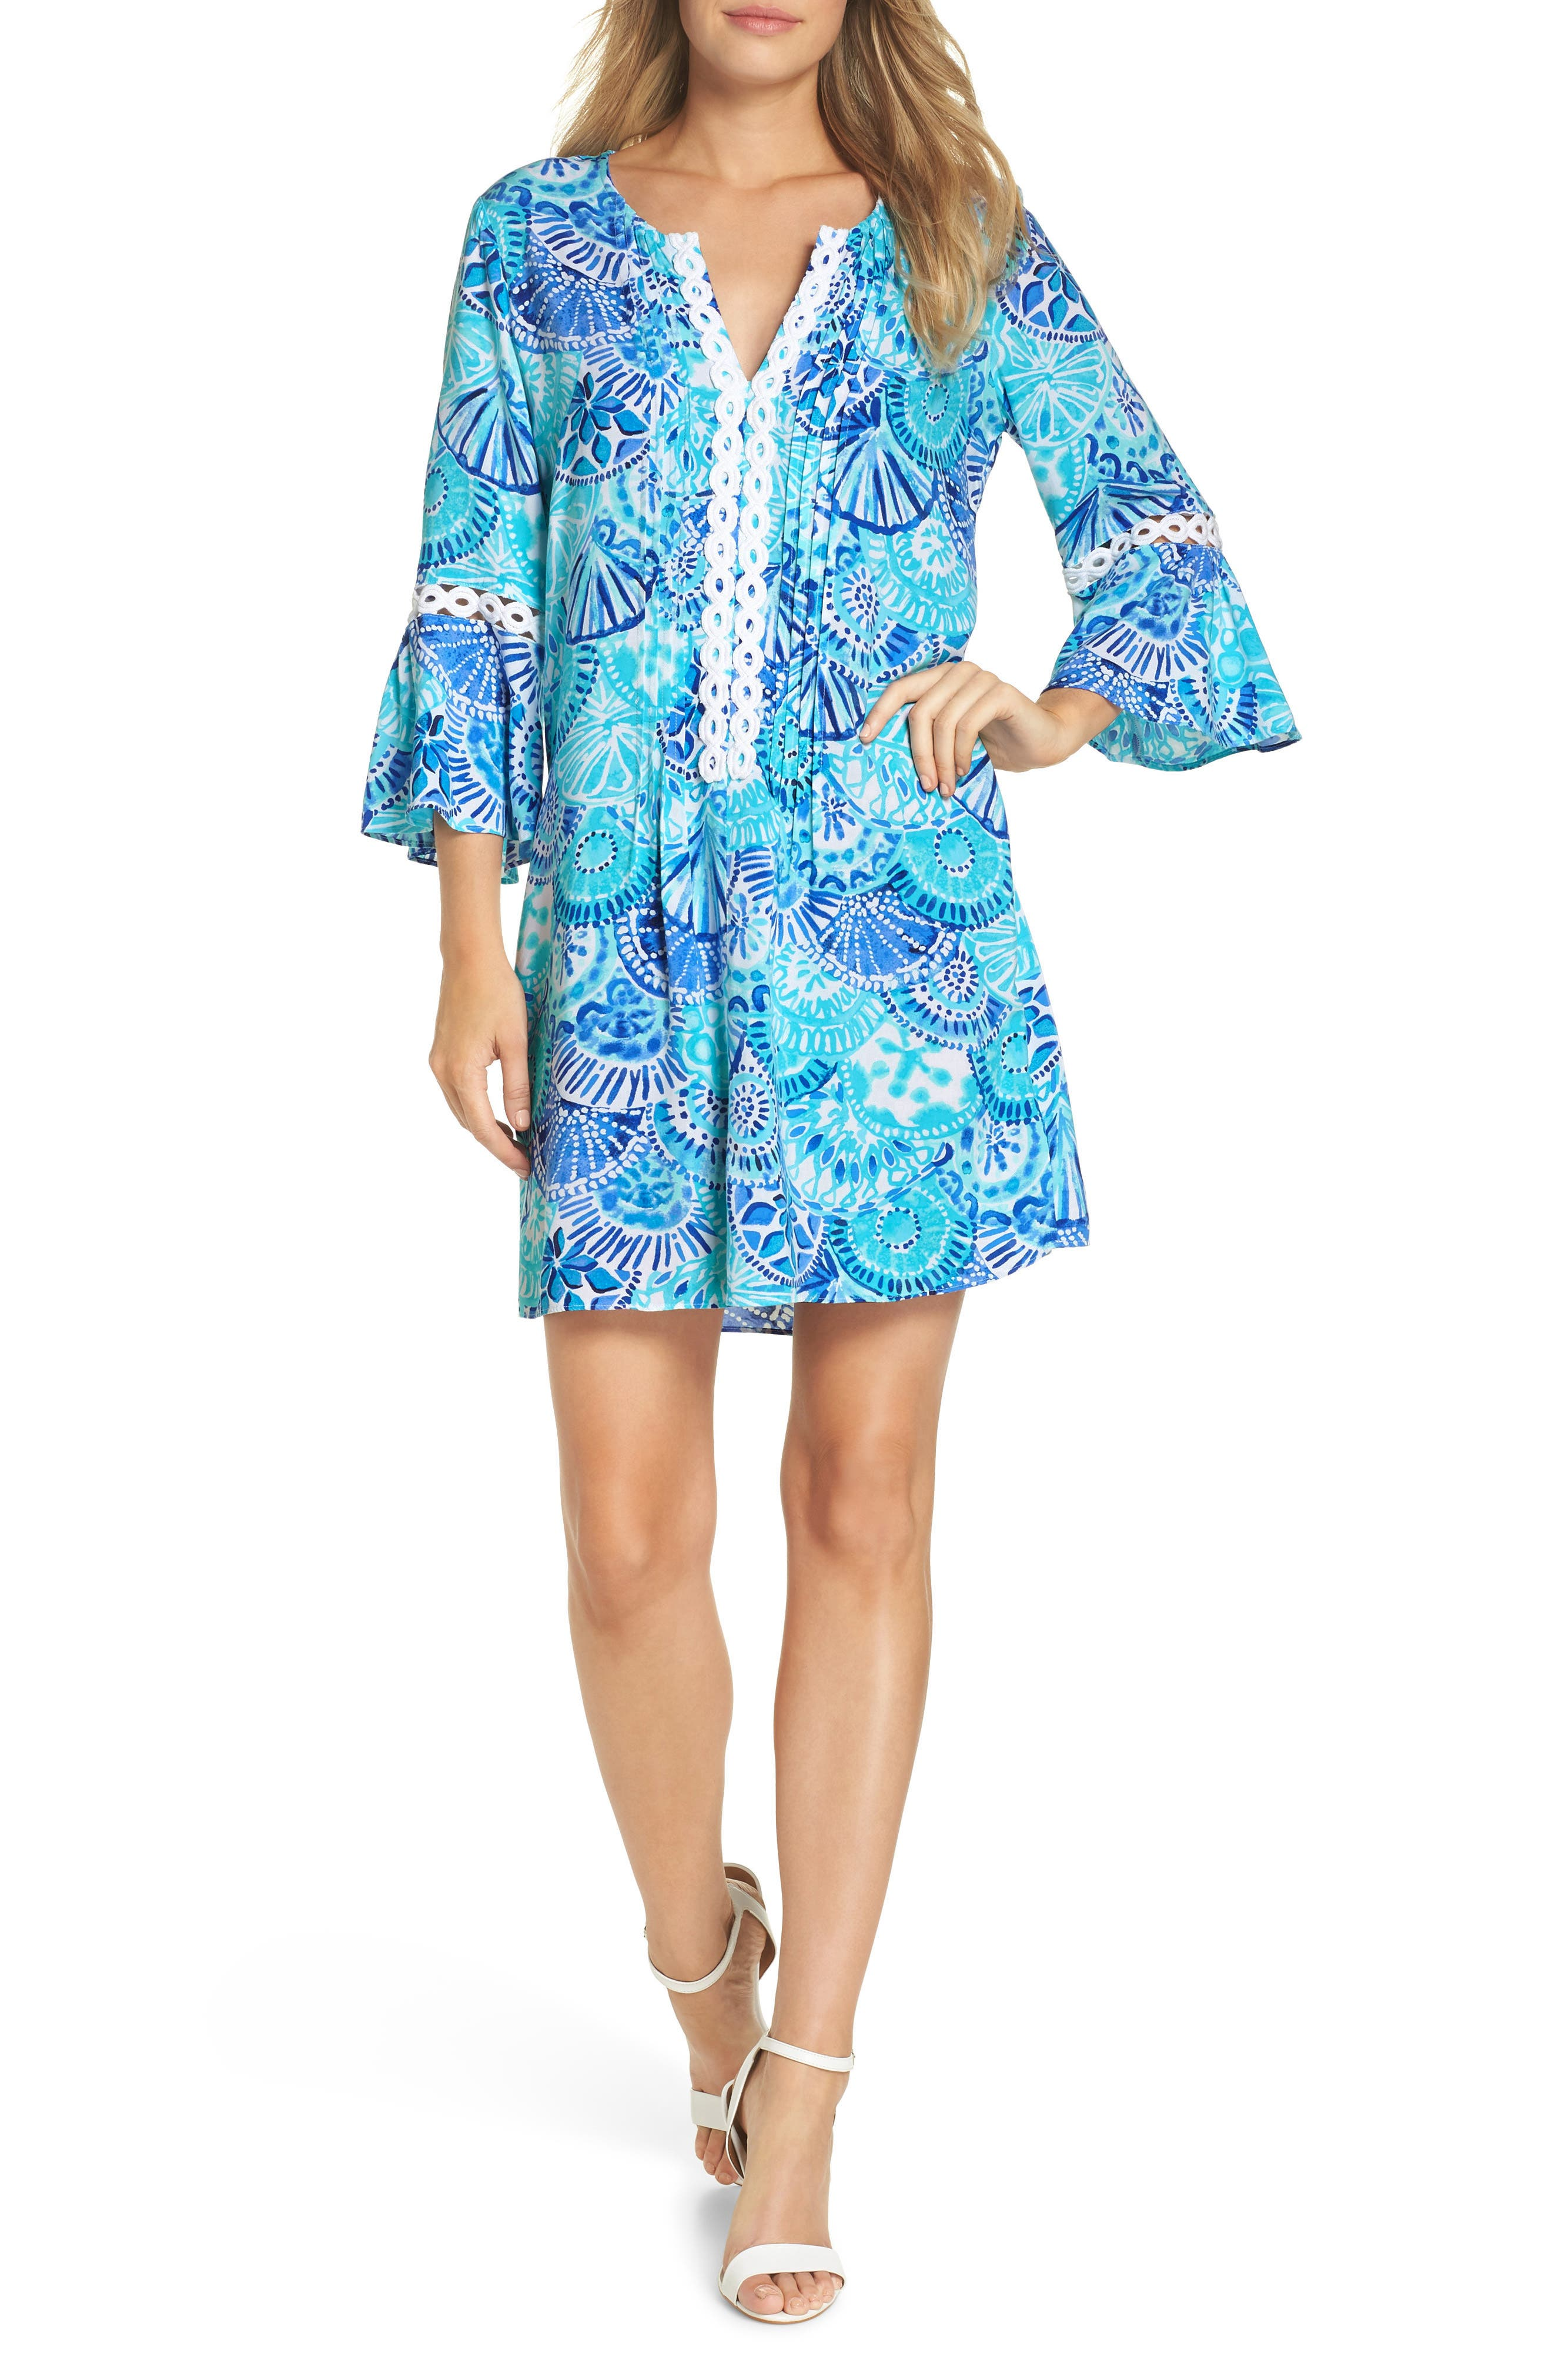 Lilly Pulitzer Hollie Cotton Shift Dress, Blue